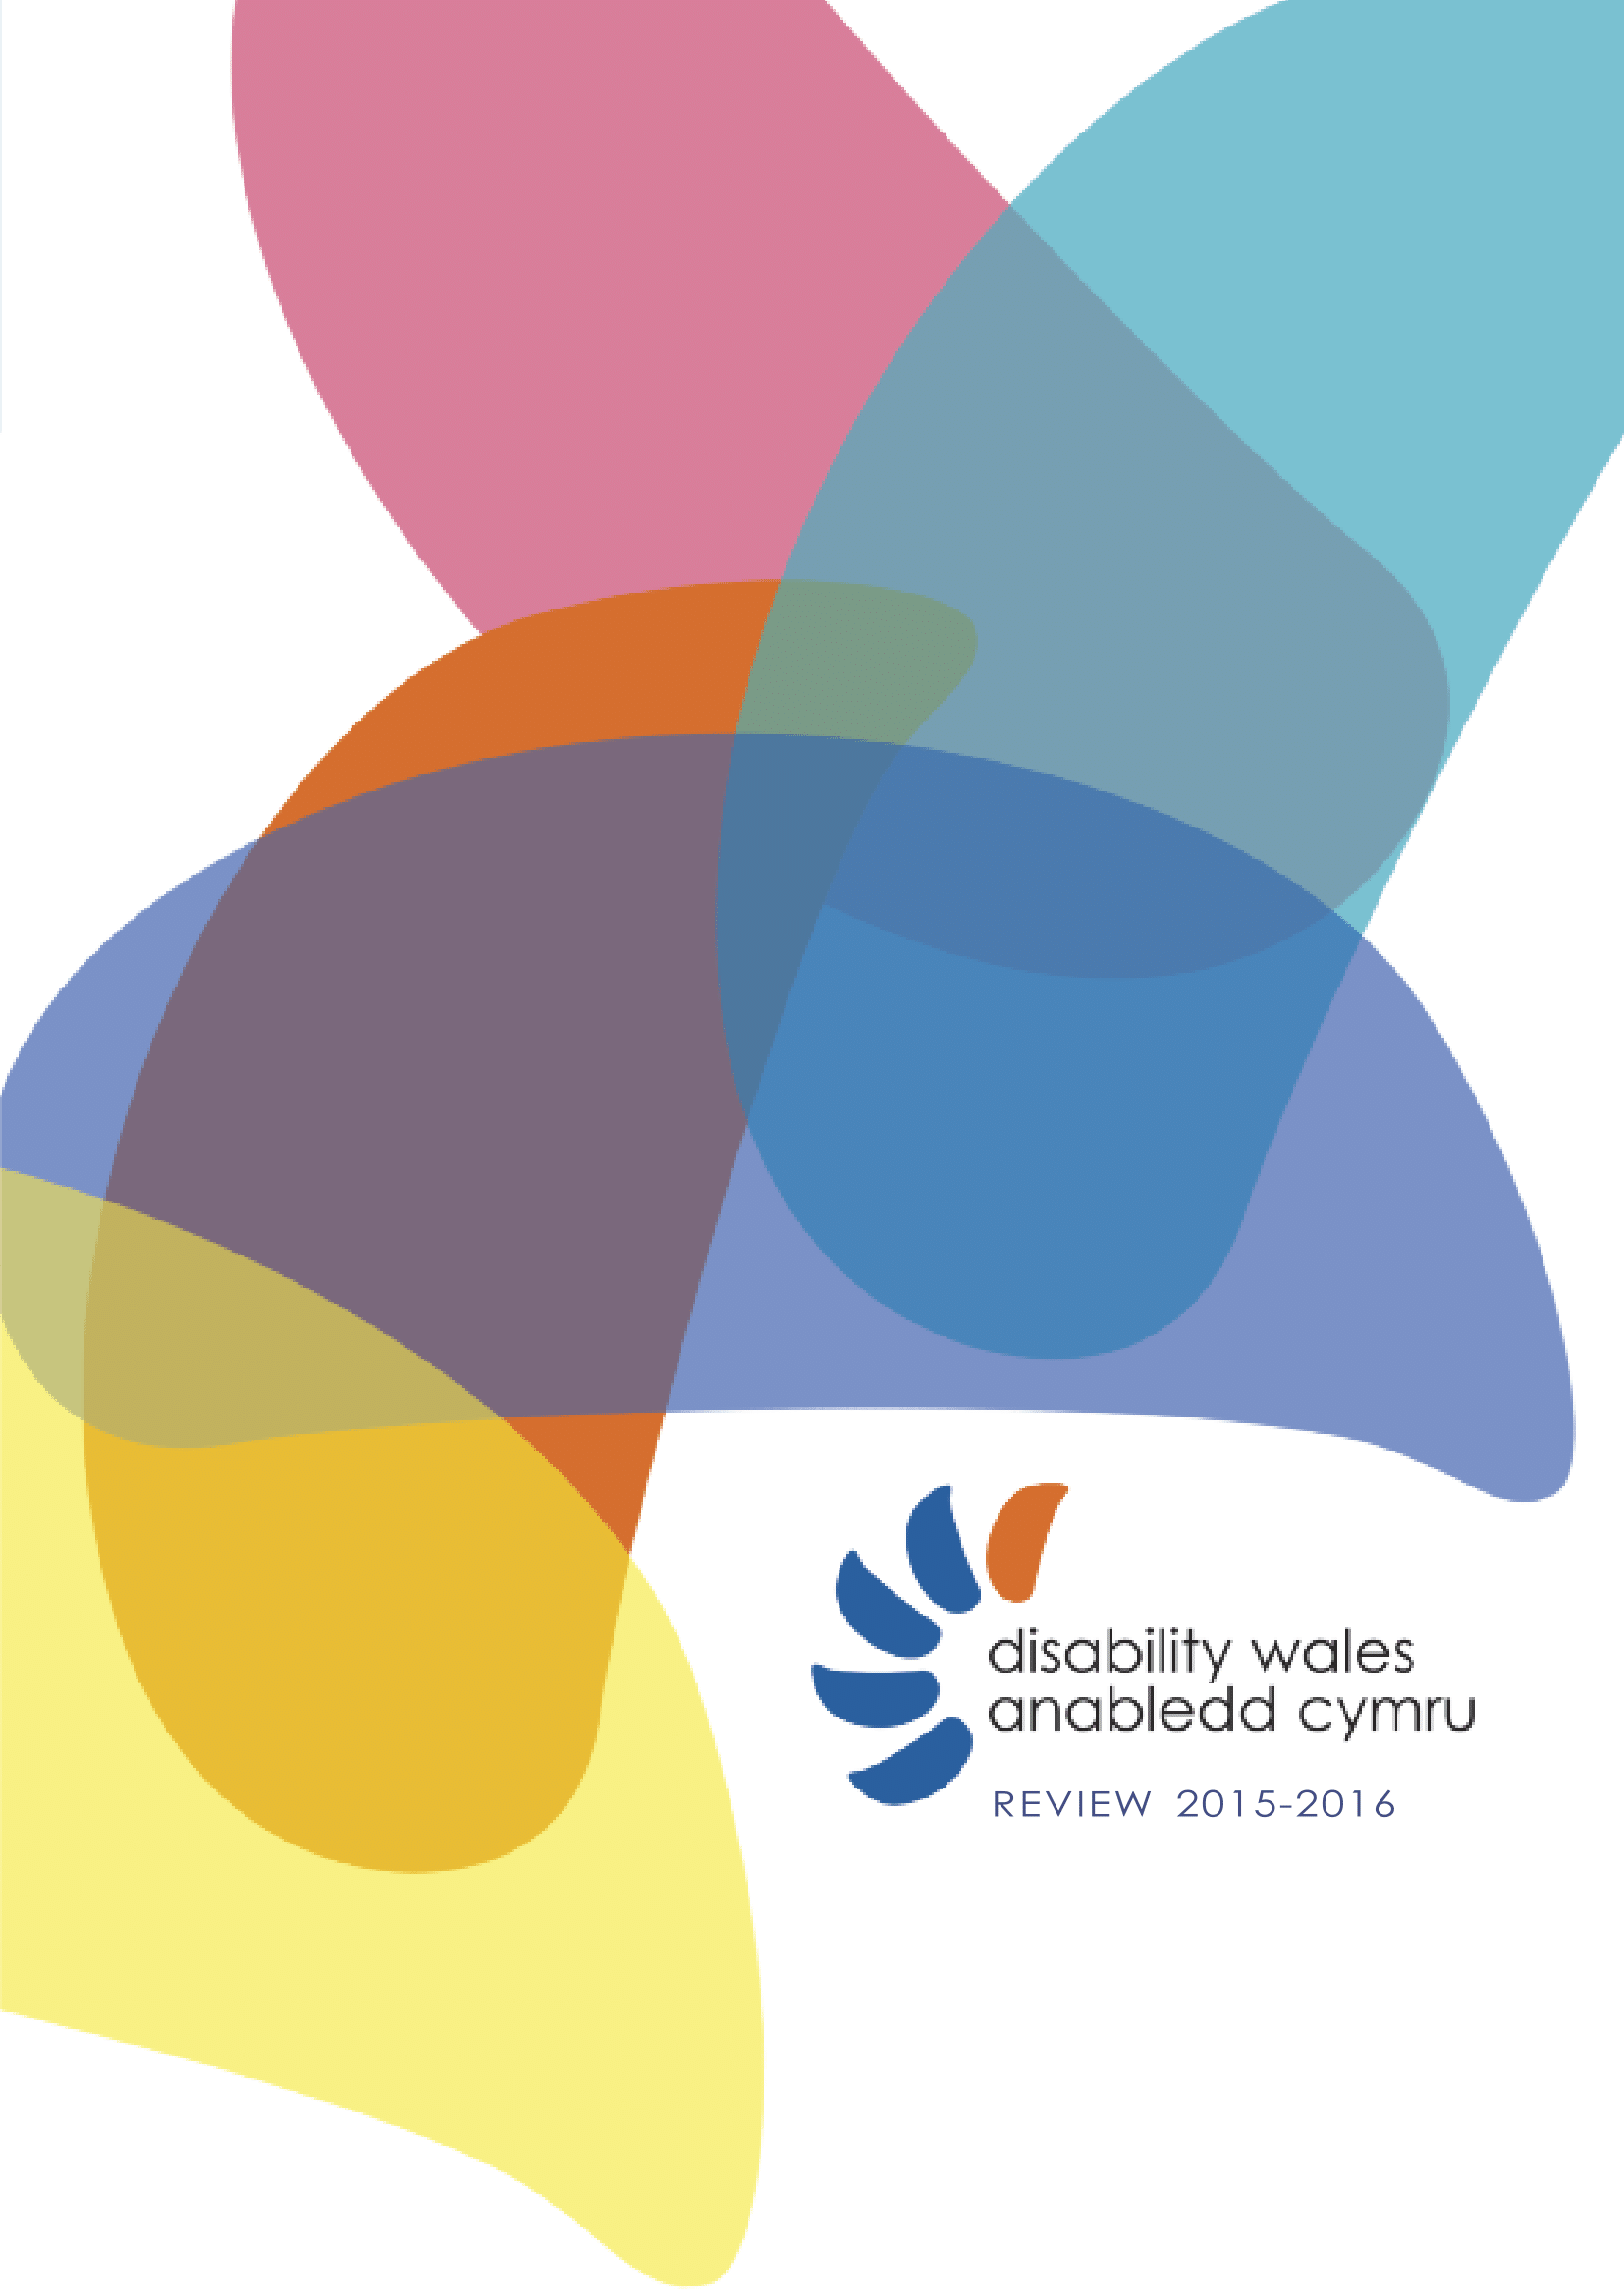 Image for DW Annual Report 2015-2016